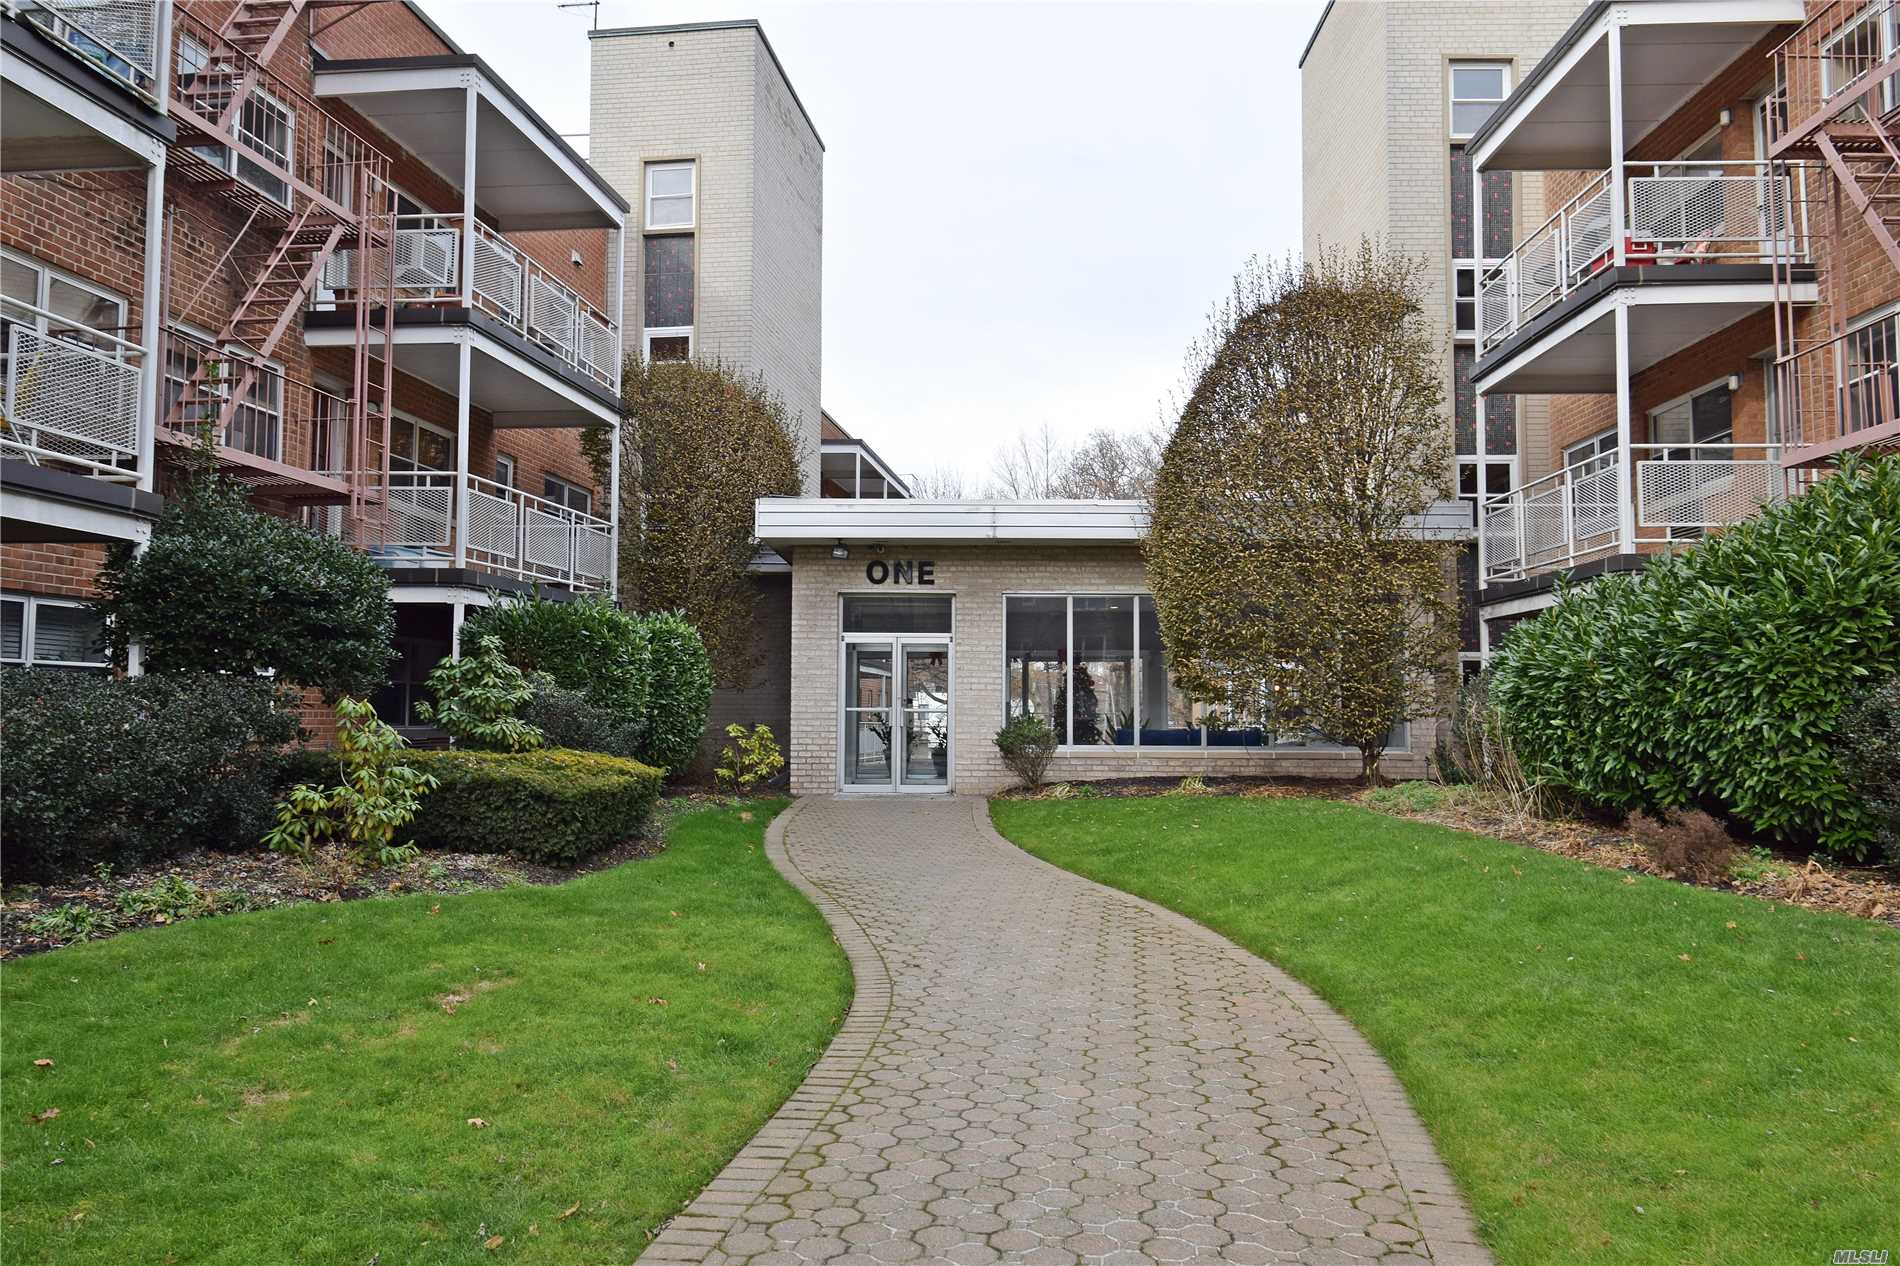 Fabulous Opportunity To Make This Centrally Located One Bedroom Apartment Spectacular! Close To Park, Town, And Transportation. Opens To Bright Terrace And Includes Parking Spot.